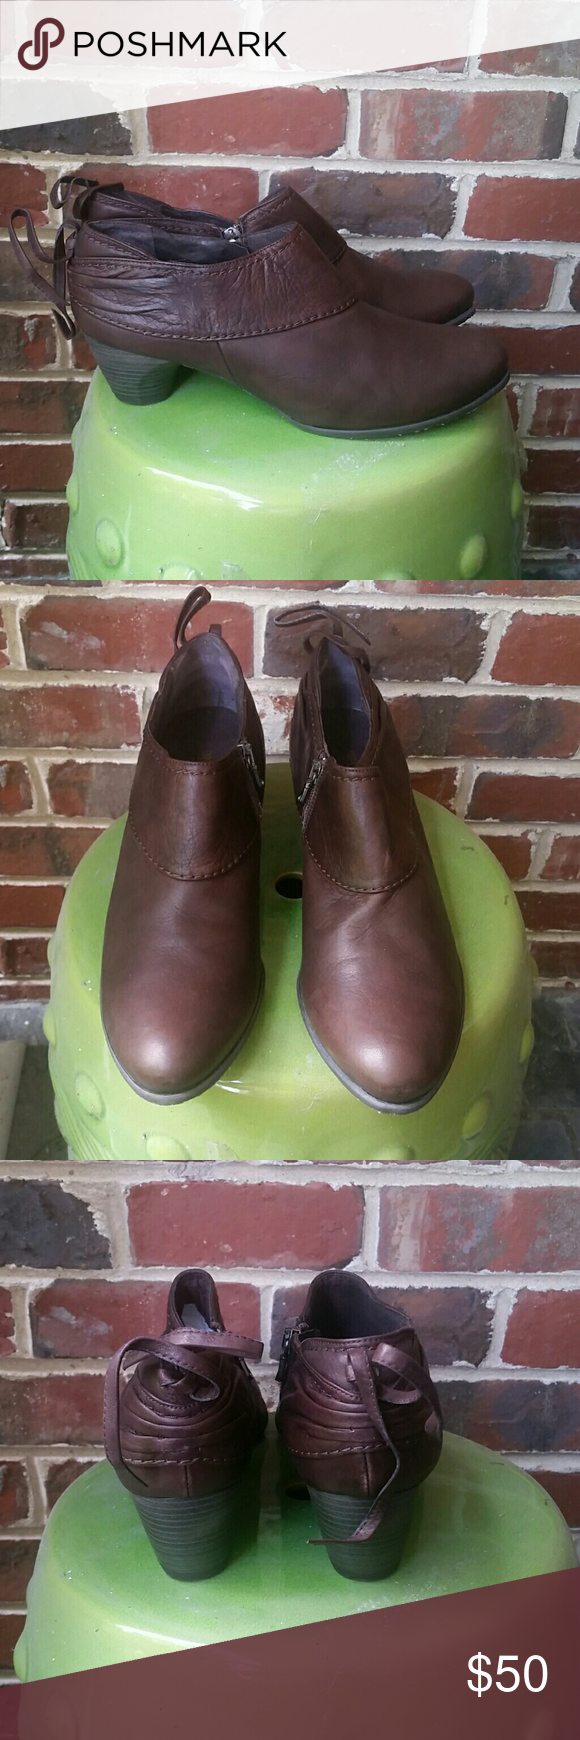 Antia Leather Booties, size 12 Brown leather Antia booties, size 12 (label says 42.5), never worn. Antia Shoes Ankle Boots & Booties